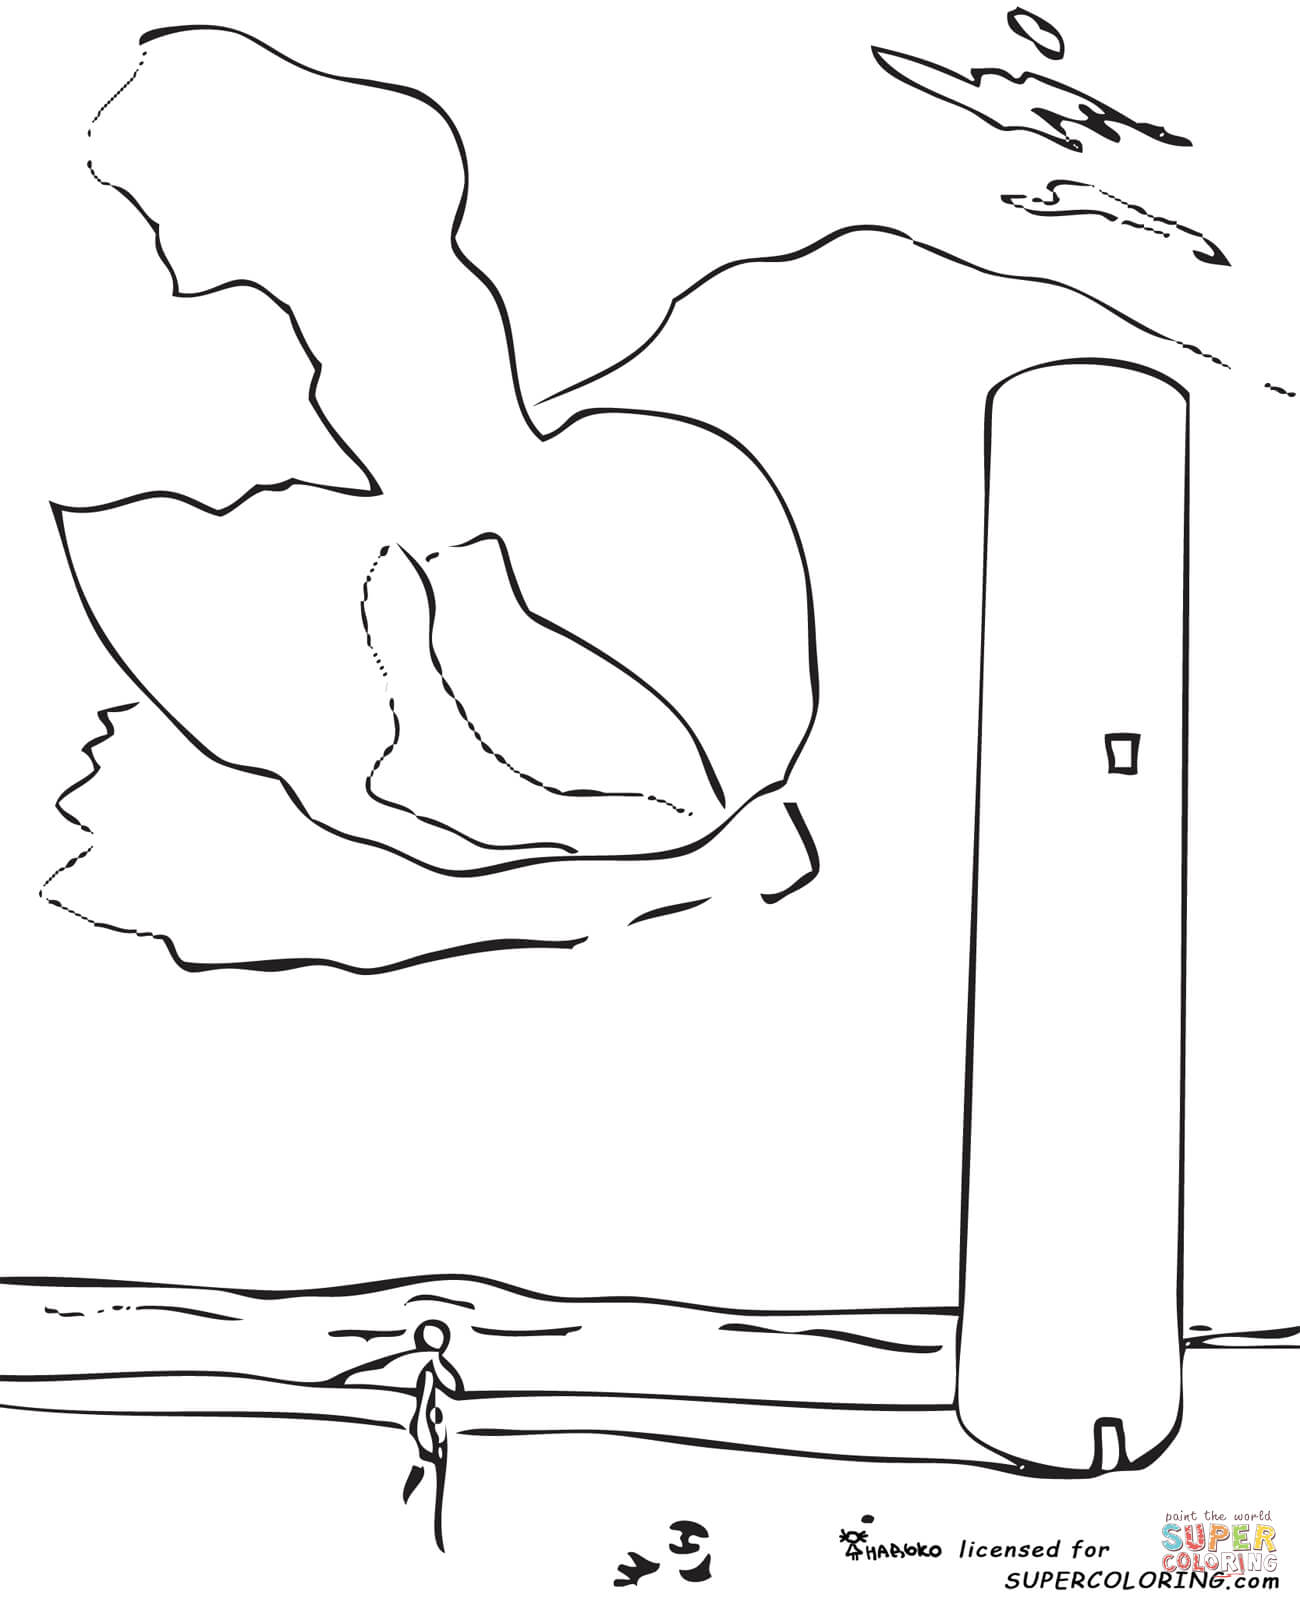 1300x1599 The Tower By Salvador Dali Coloring Page Free Printable Coloring